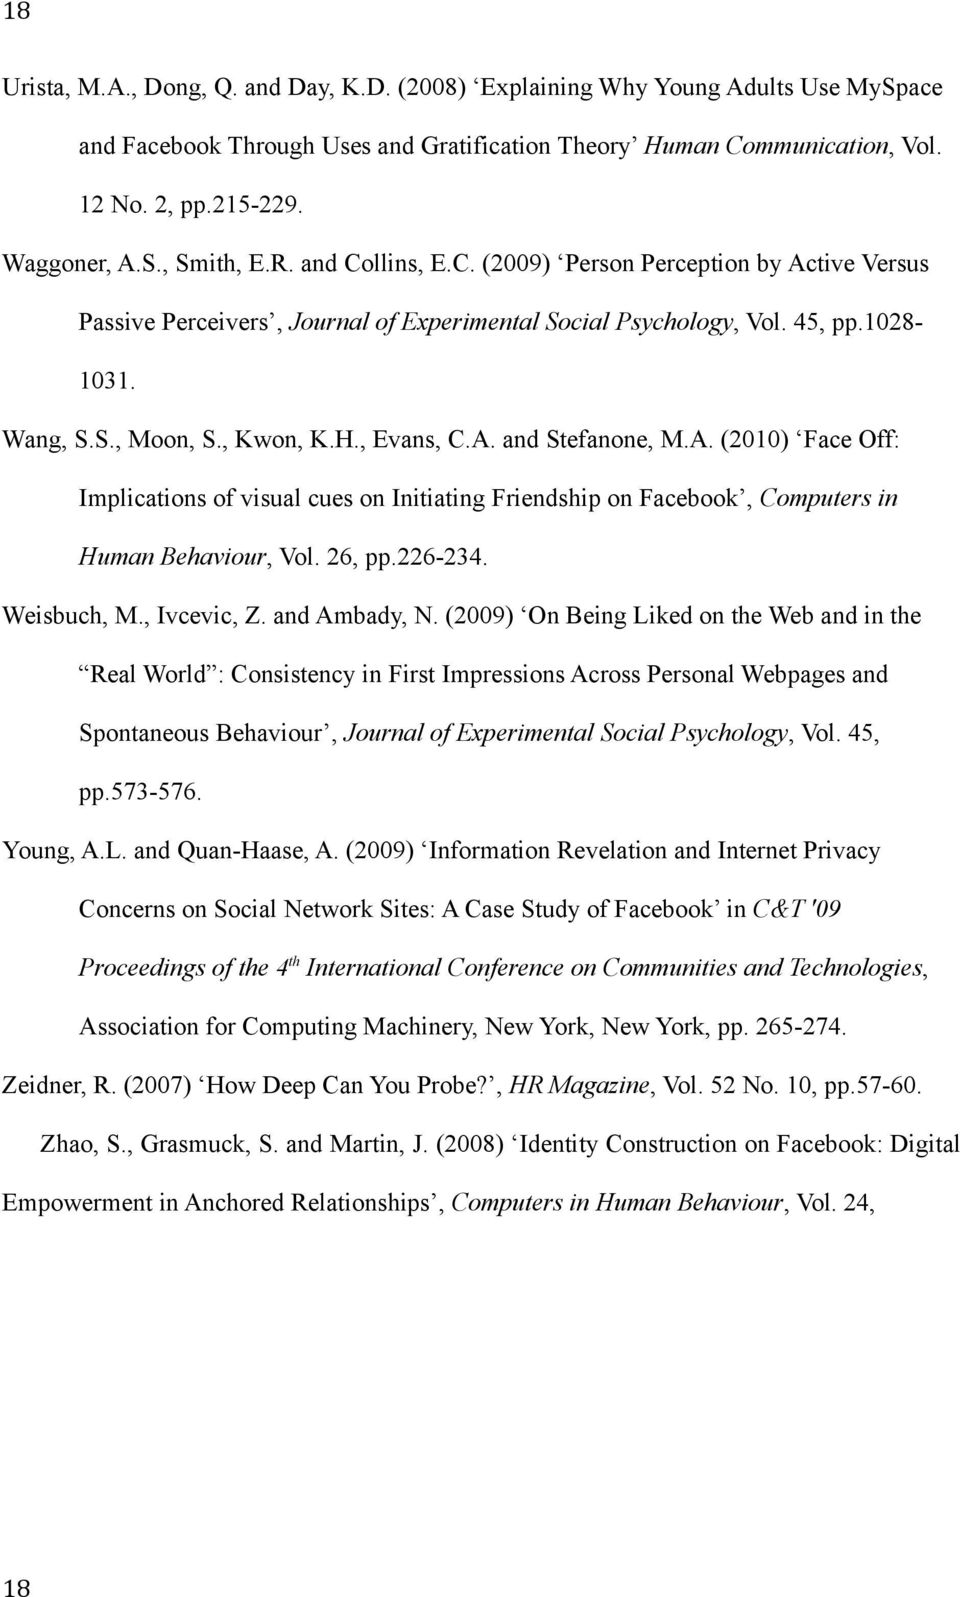 A. (2010) Face Off: Implications of visual cues on Initiating Friendship on Facebook, Computers in Human Behaviour, Vol. 26, pp.226-234. Weisbuch, M., Ivcevic, Z. and Ambady, N.